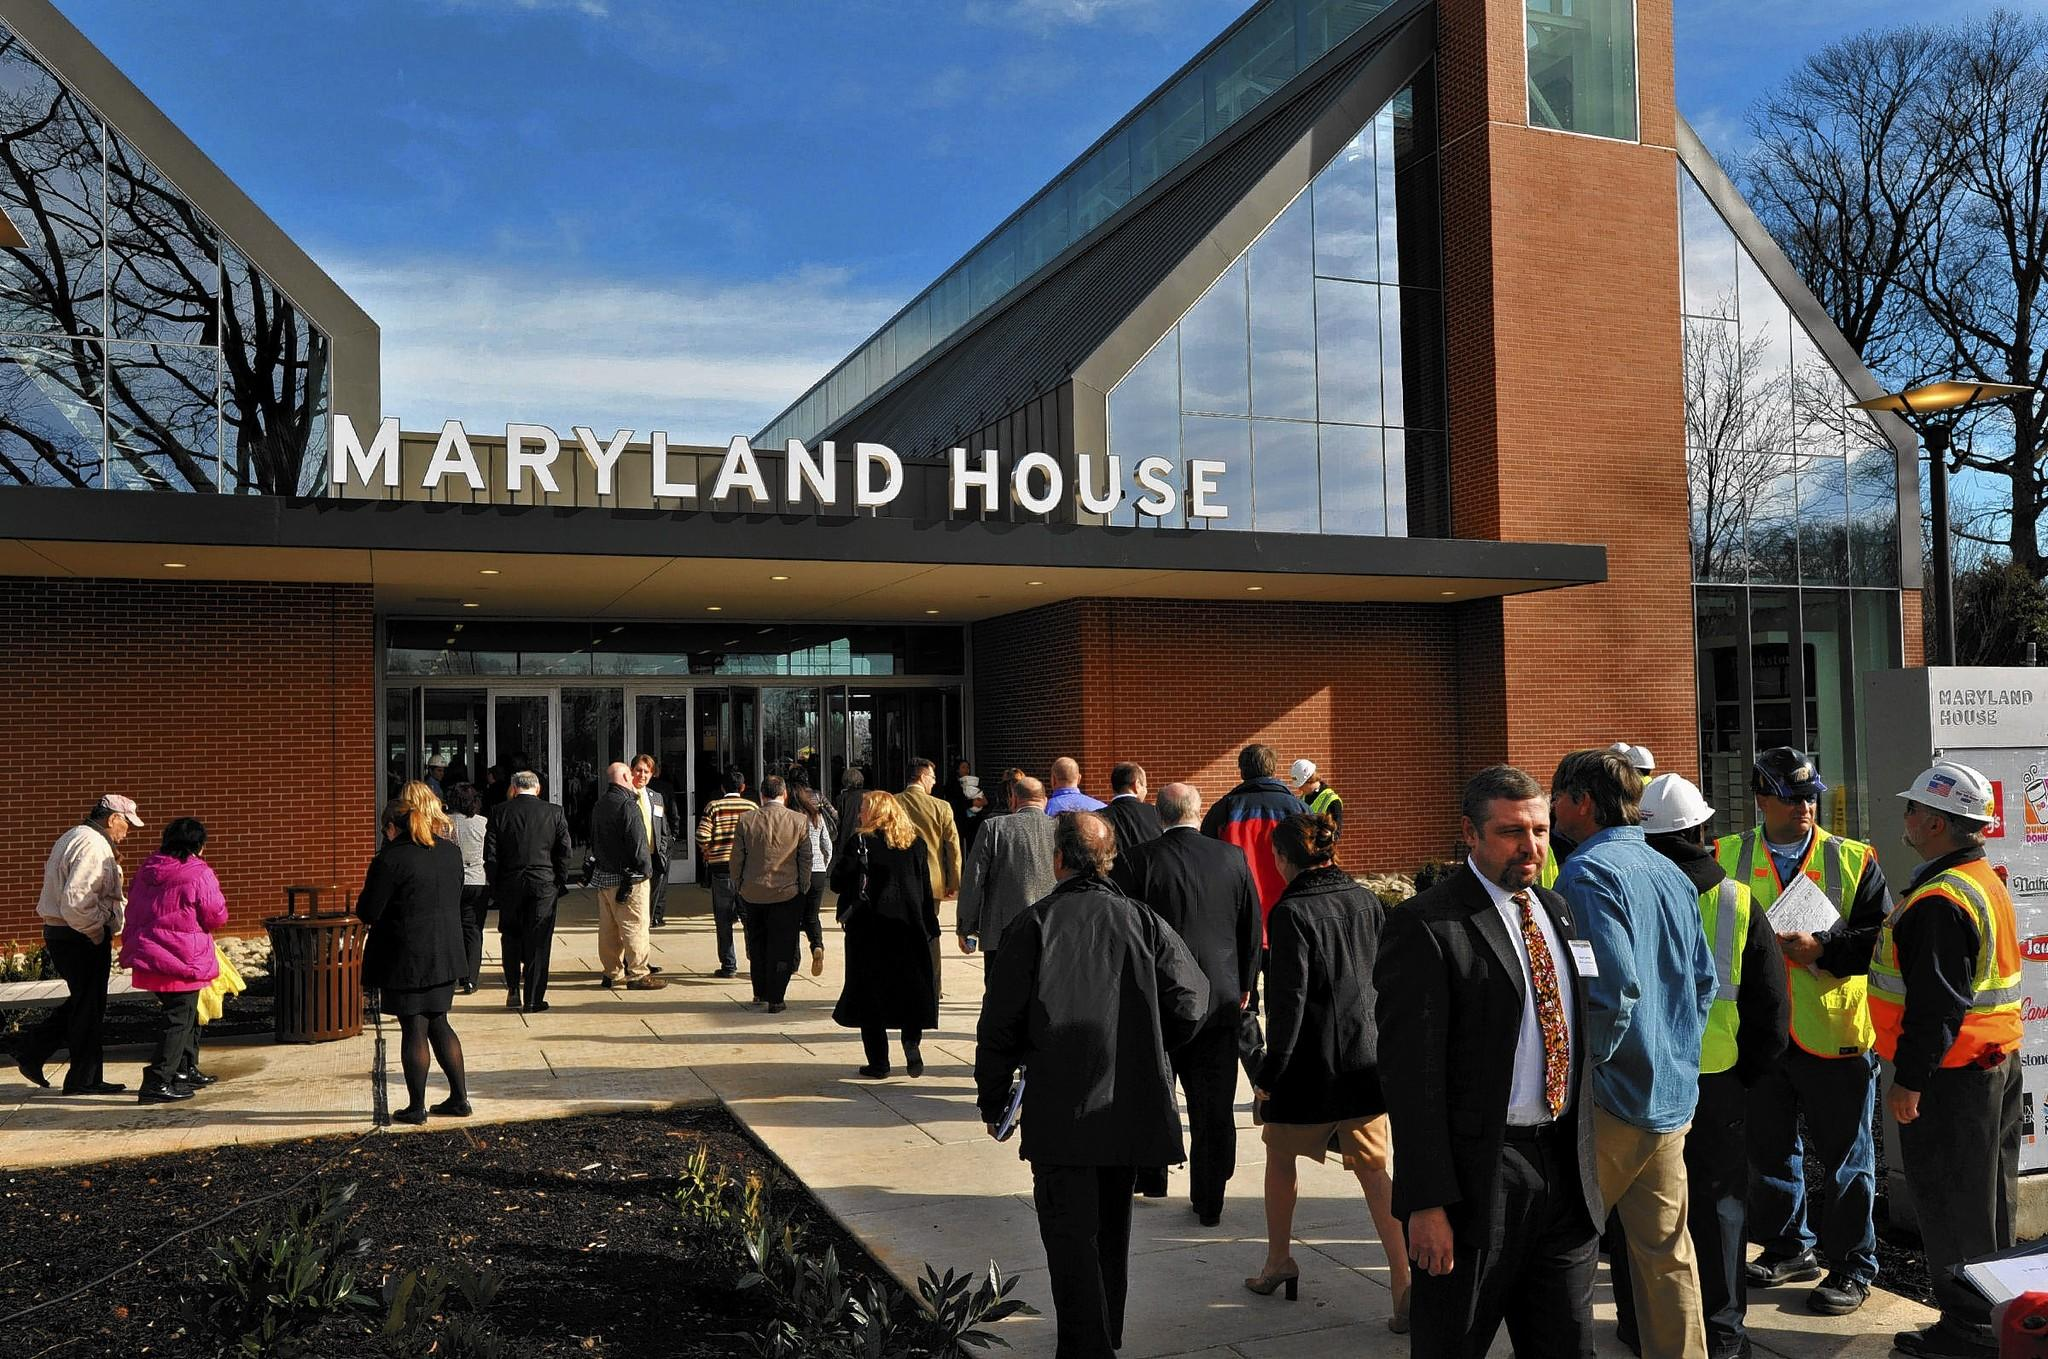 Visitors invited to the preview enter the new $30 million Maryland House Travel Plaza. Lt. Gov. Anthony G. Brown and Sen. Ben Cardin joined other public officials and private sector partners for the ribbon-cutting and preview of the new Maryland House Travel Plaza.